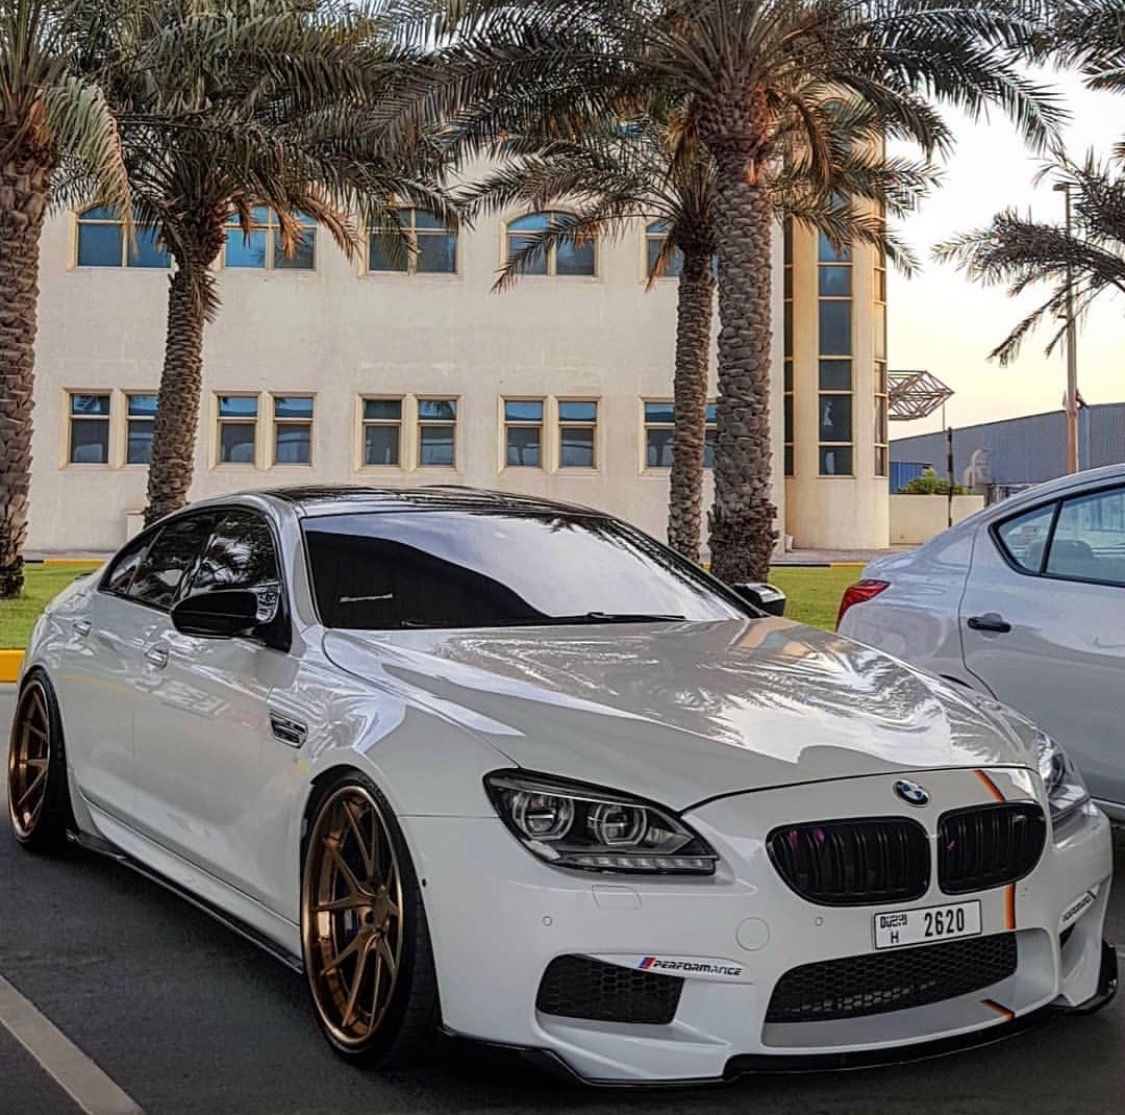 Bmw M6 Gran Coupe Snow White With Images Bmw 650i Gran Coupe